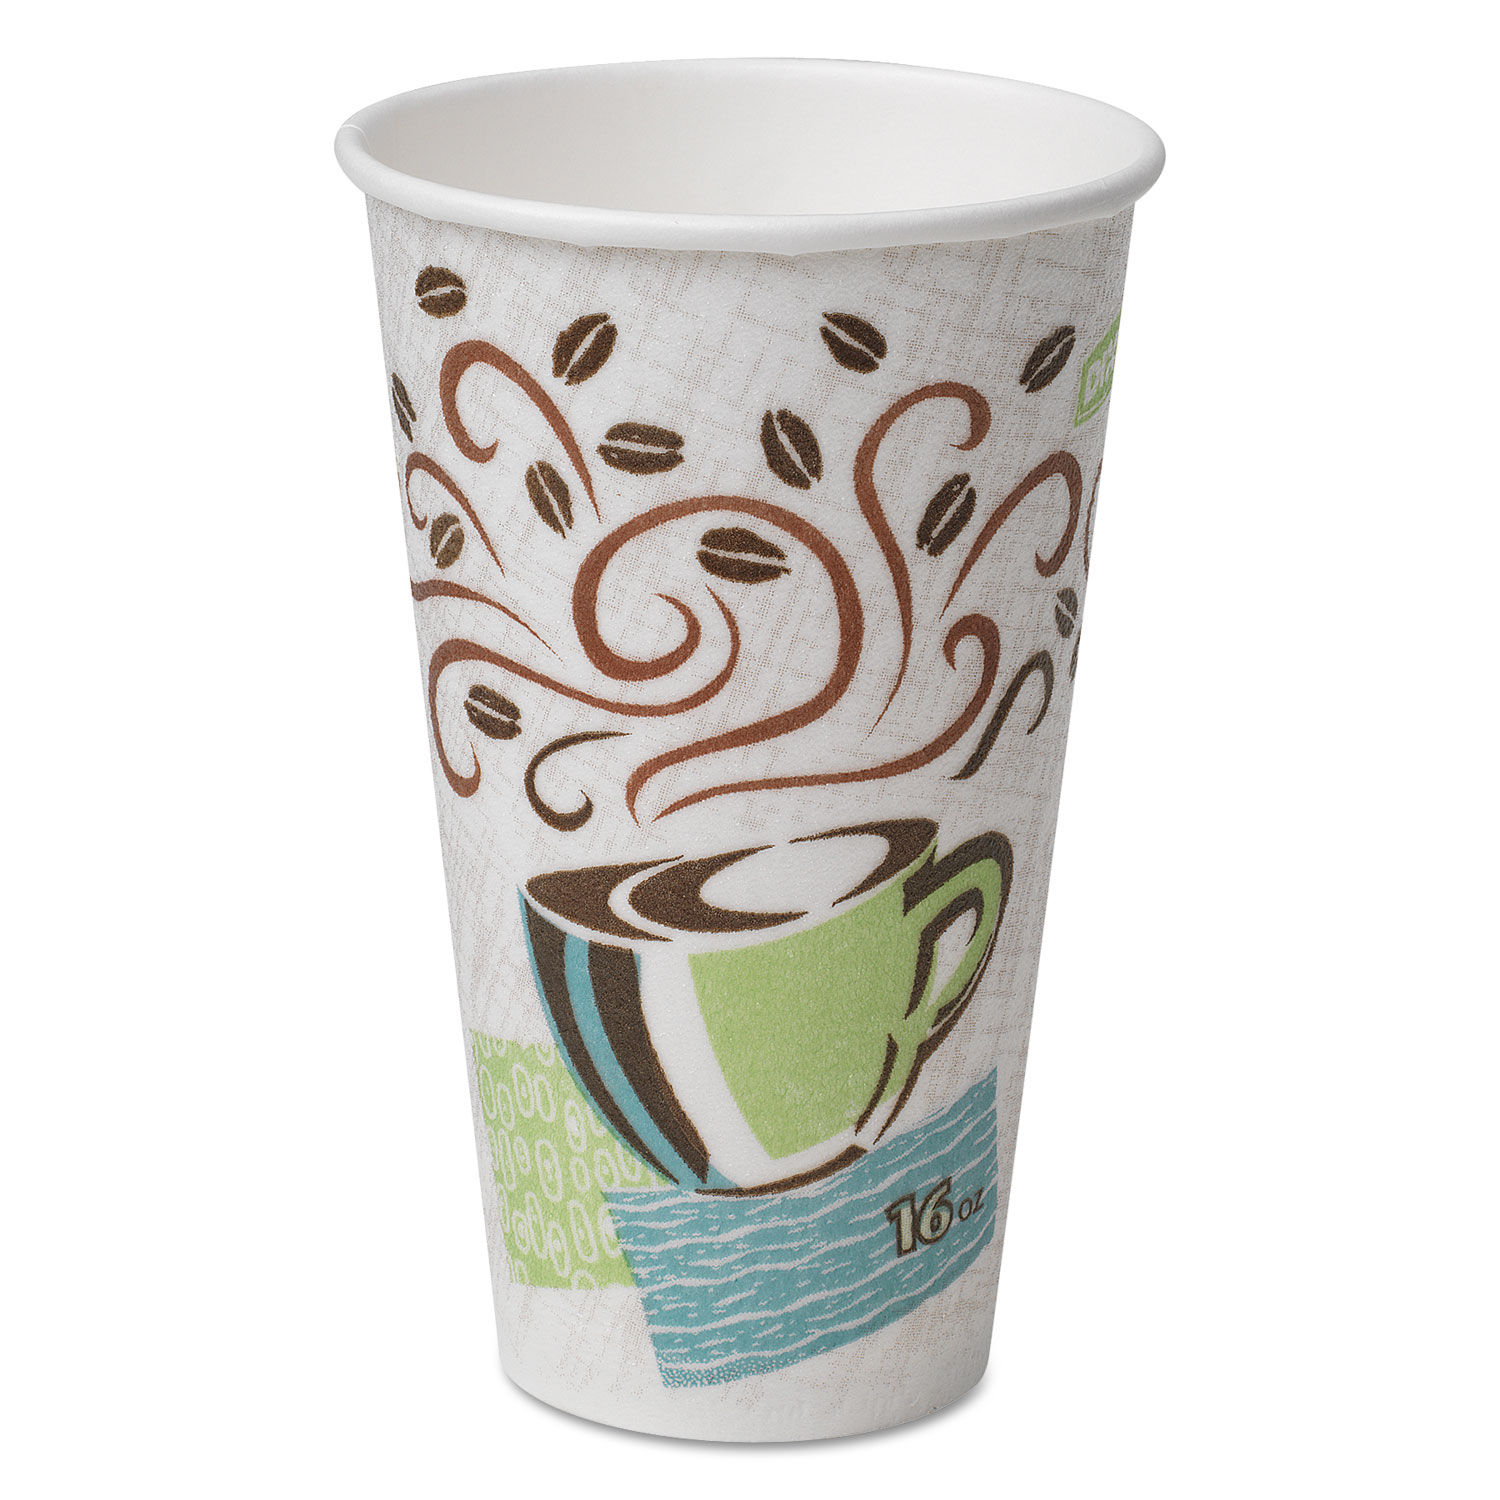 PerfecTouch Paper Hot Cups, 16 oz, Coffee Dreams Design, 50/Pack